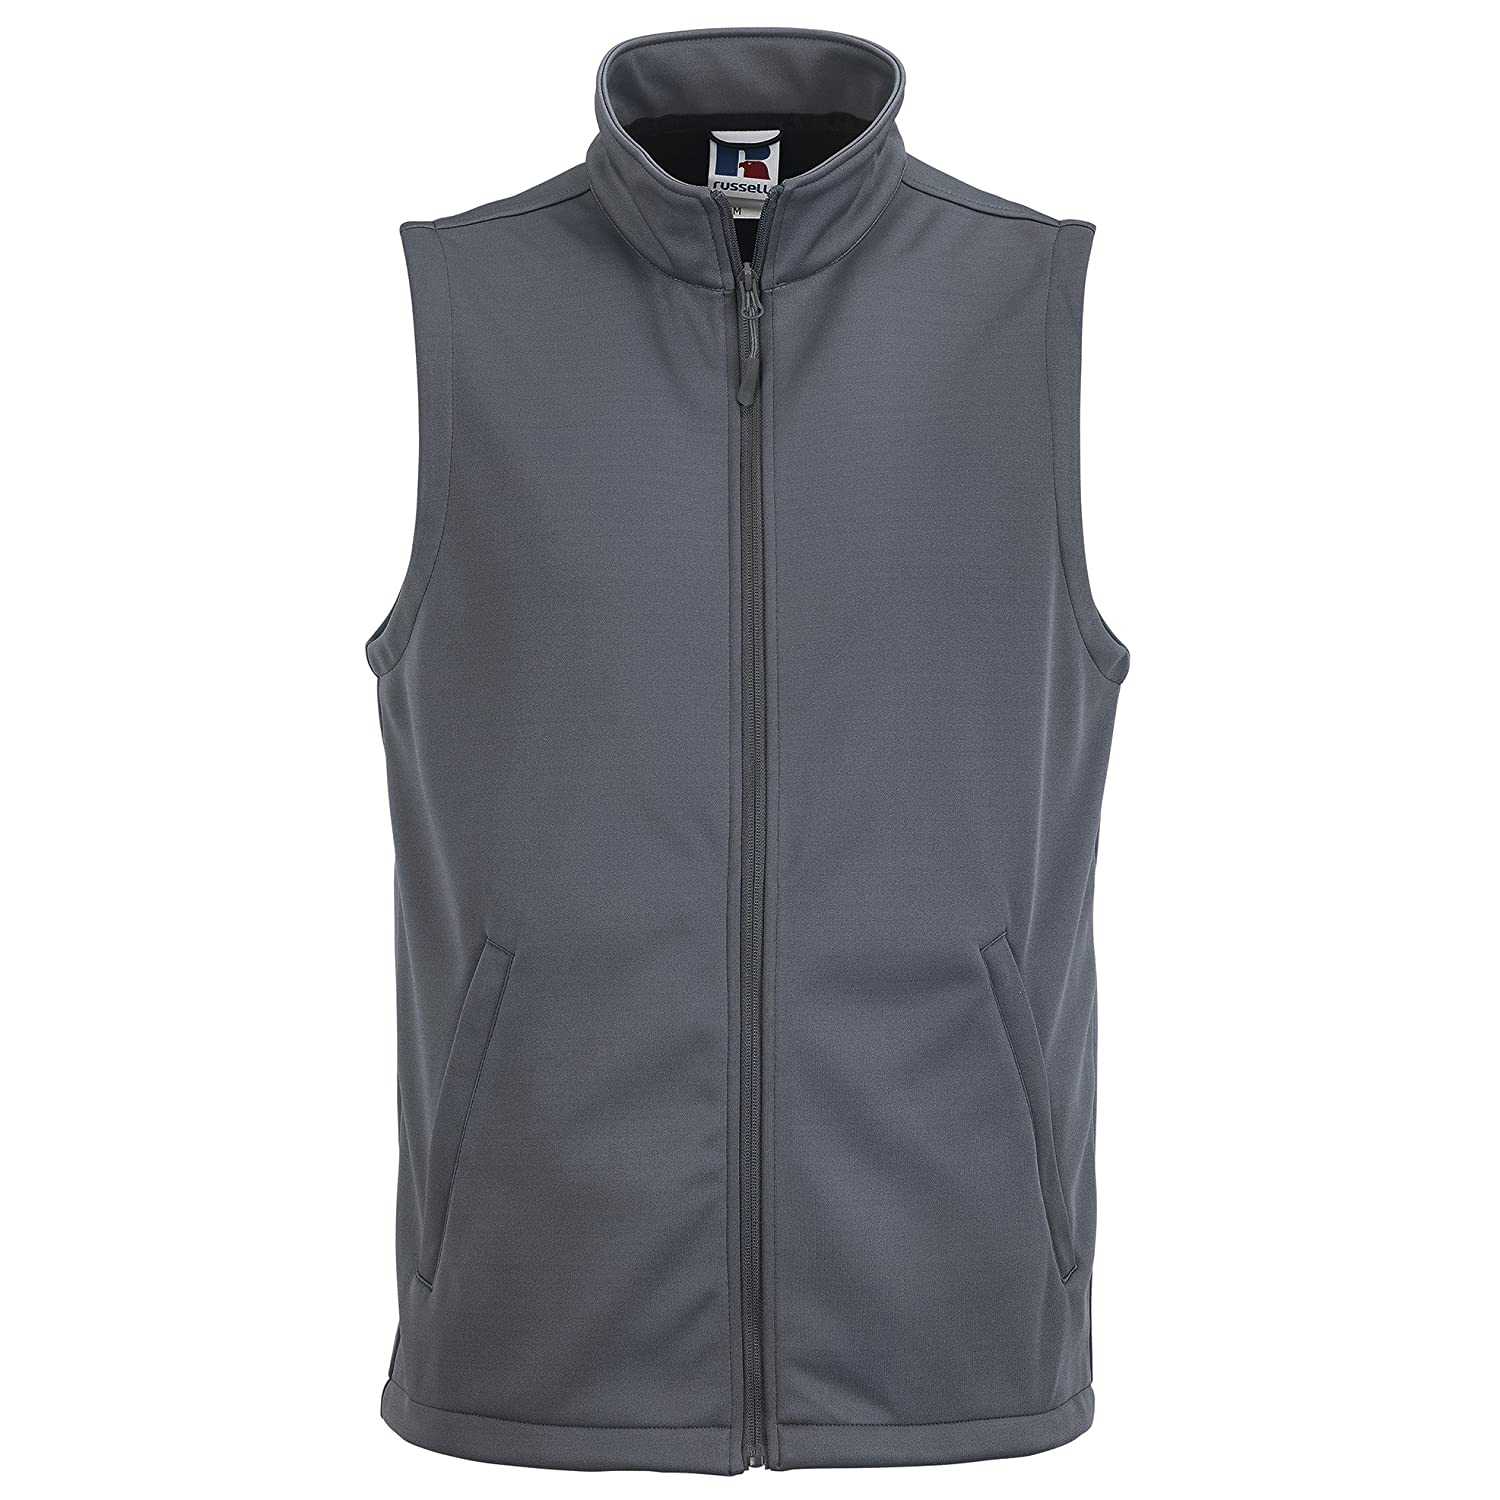 Russell Mens Smart Softshell Gilet Jacket: Amazon.co.uk: Clothing